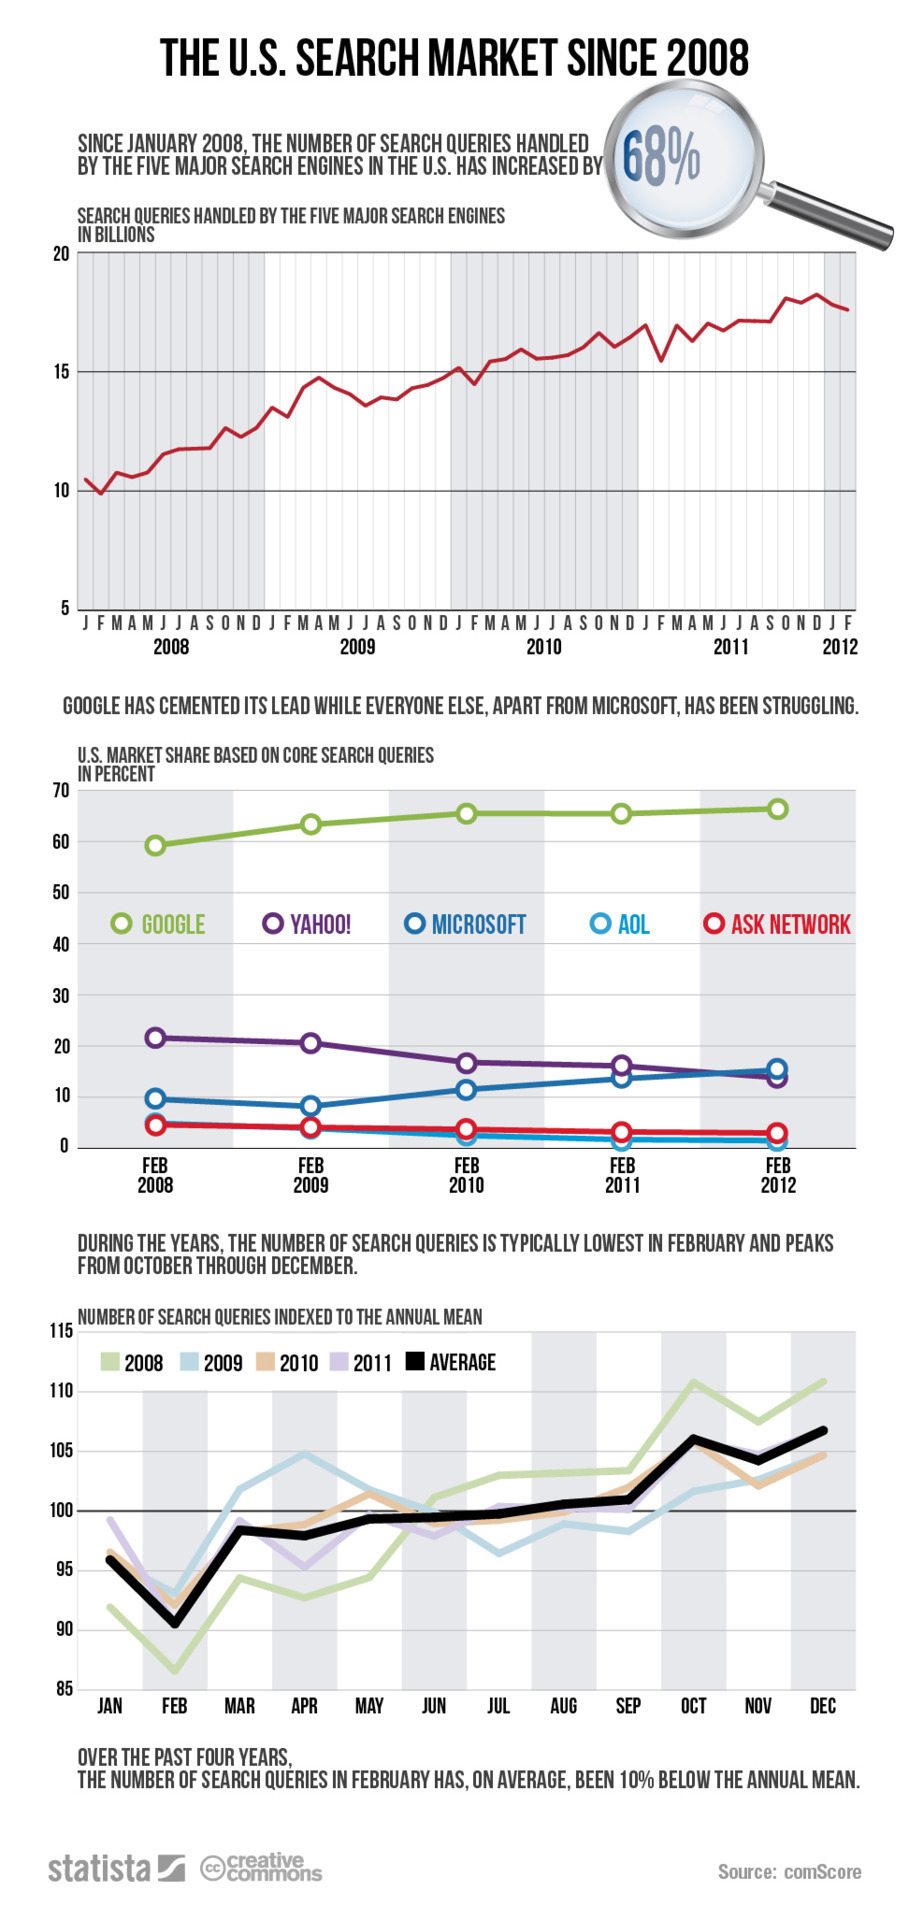 U.S. Search Market since 2008 [infographic] Other than February being the shortest month, any guesses about why it has the lowest number of search queries? My speculations: it's not midterms/end of semester on the academic calendar; everyone already knows the typical gifts for Valentine's Day (Christmas is vastly more difficult); people have already given up on their resolutions so there aren't any more (or as many) searches for gyms/diets; it's winter in most of the country so there aren't any 'what's this plant?' or gardening-type searches …